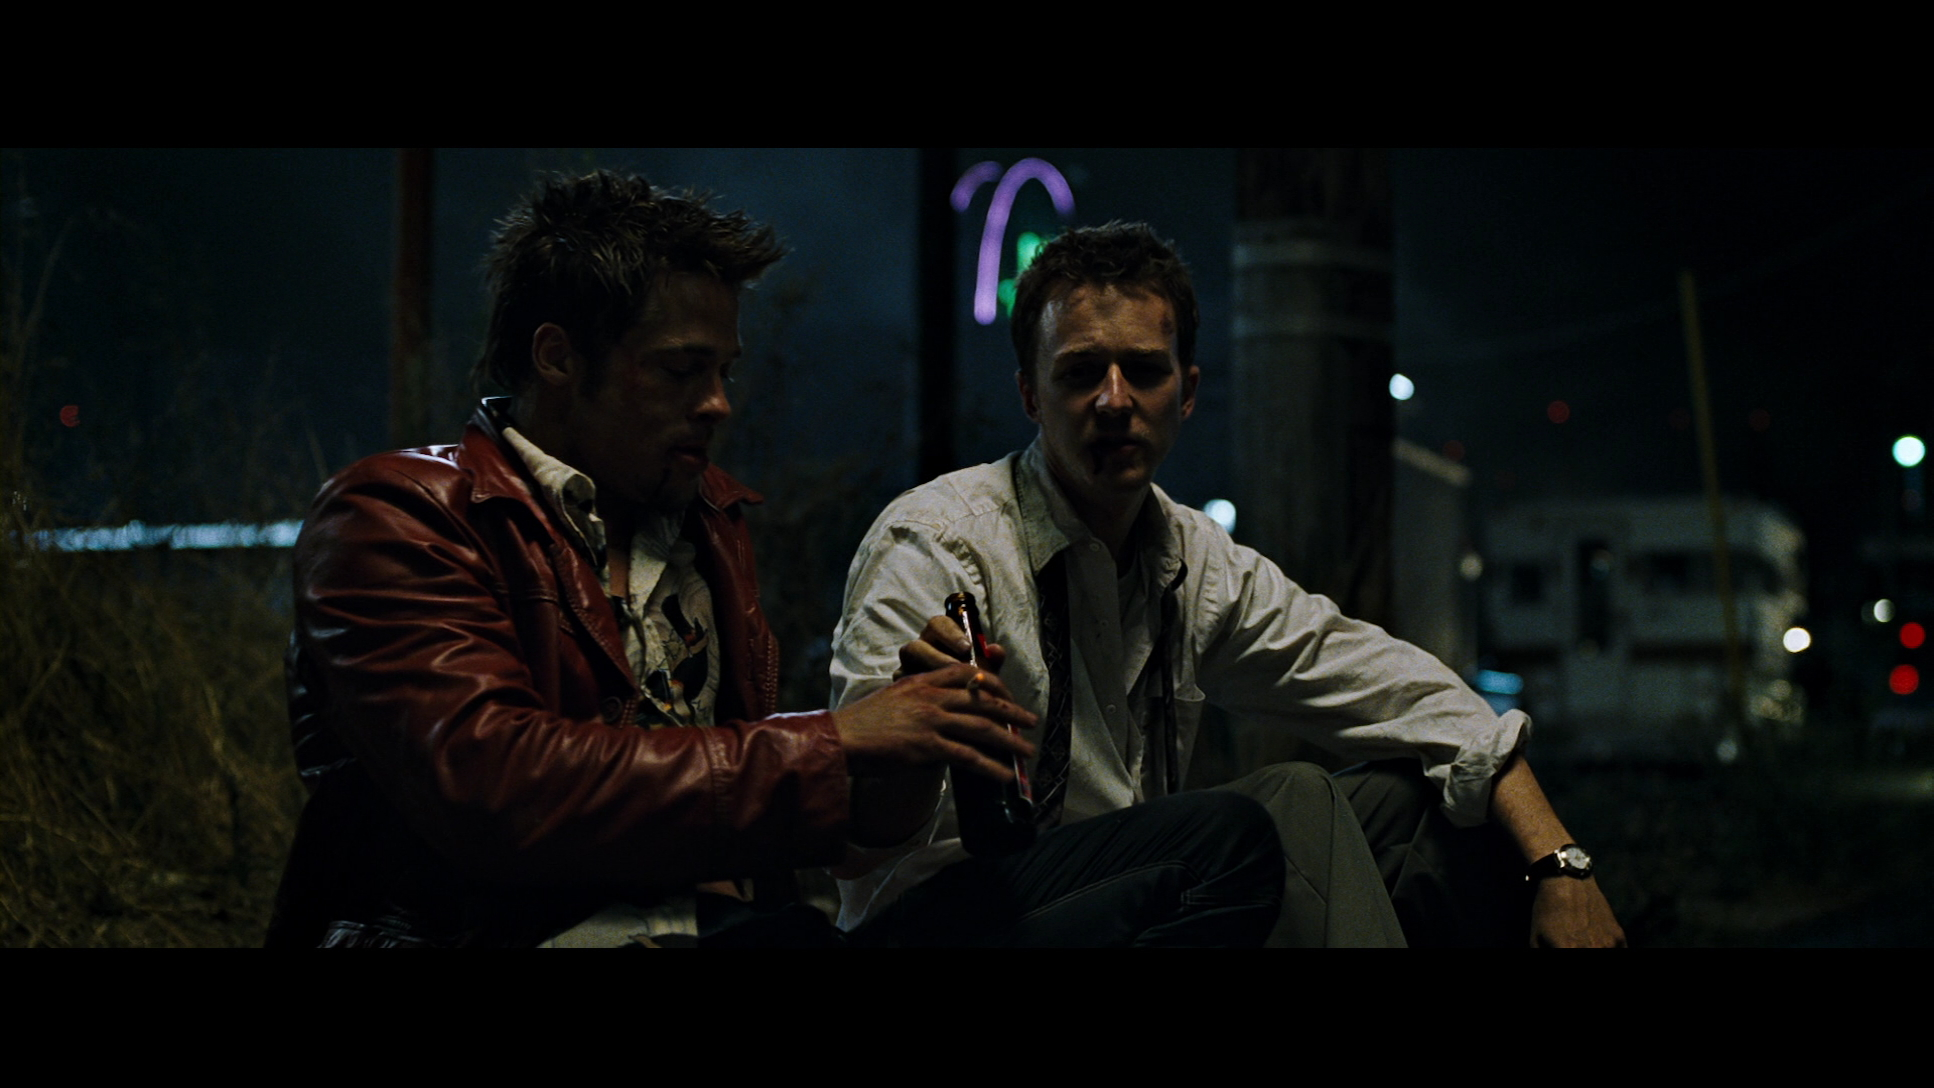 fight club cinematography Fight club - posted in lighting: theres a scene in fight club where brad pitt is in a bar and there is this bright green on his face i've seen it in a lot of different movies and still haven't been a ble to find out what gel and type of light they used.